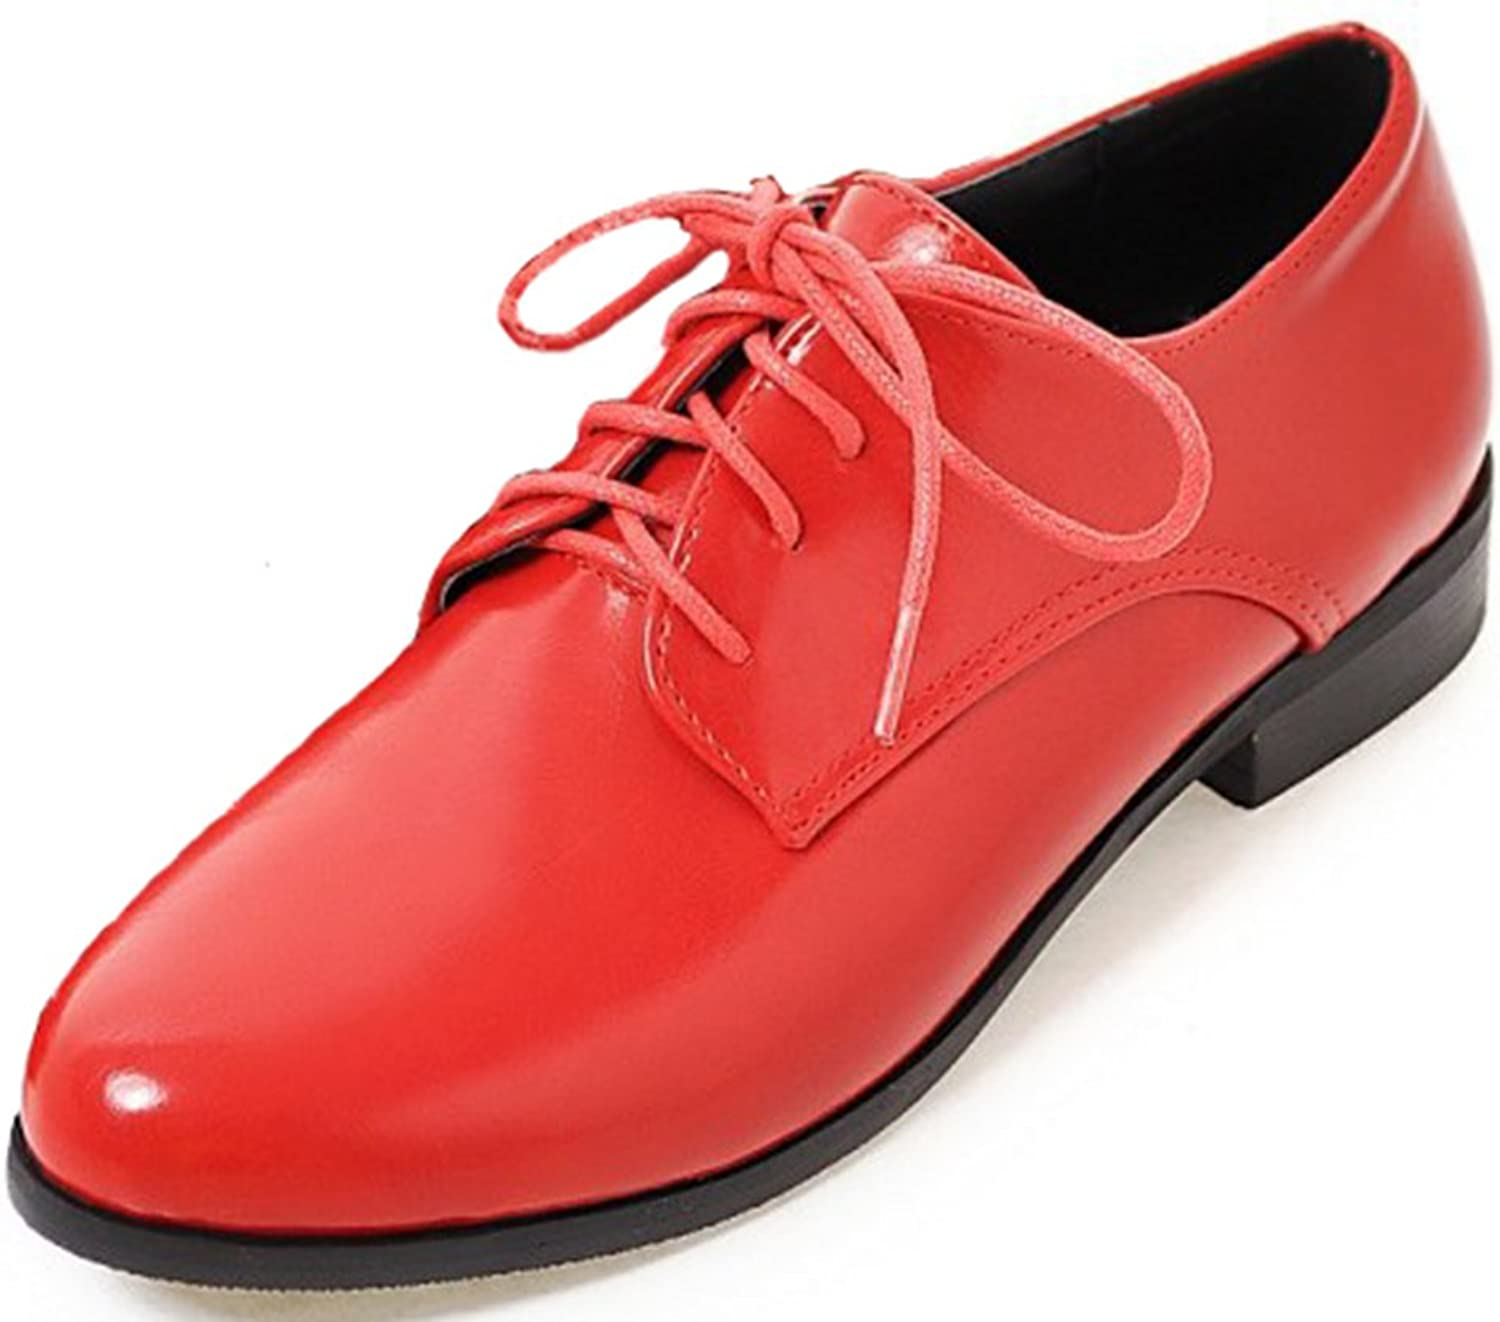 SFNLD Women's Fashion Pointed Toe Lace Up Oxfords shoes